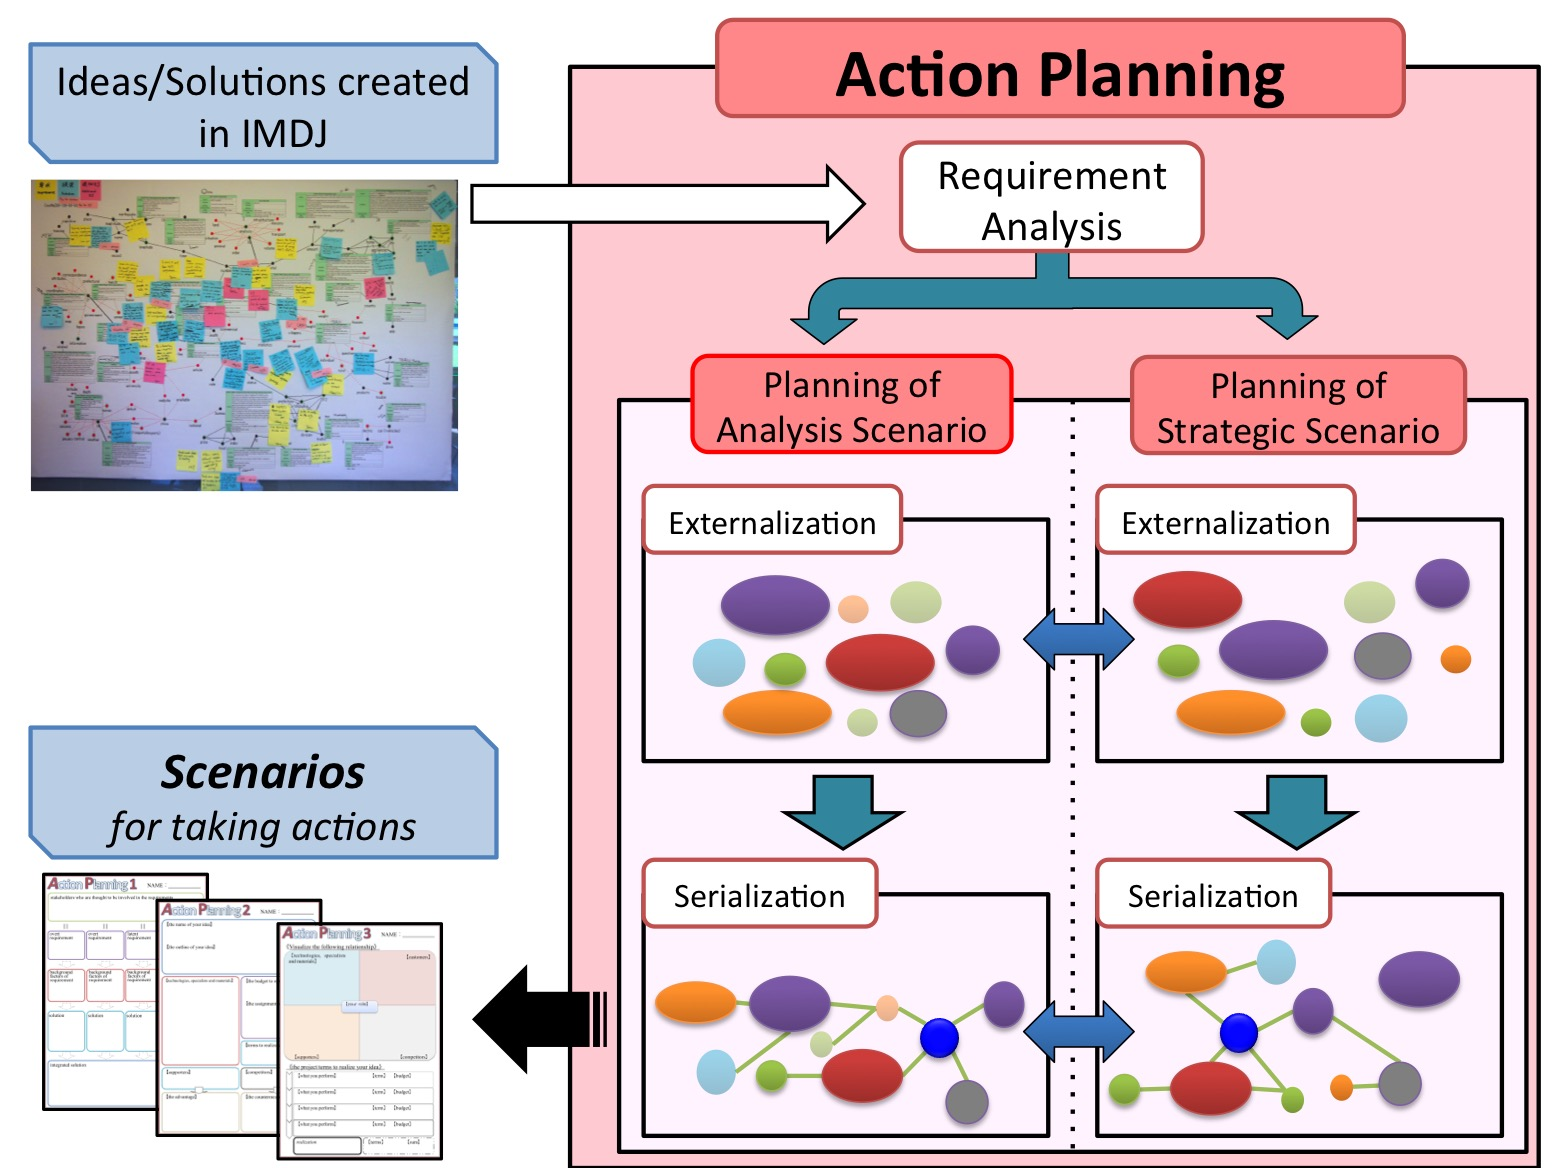 ActionPlanning